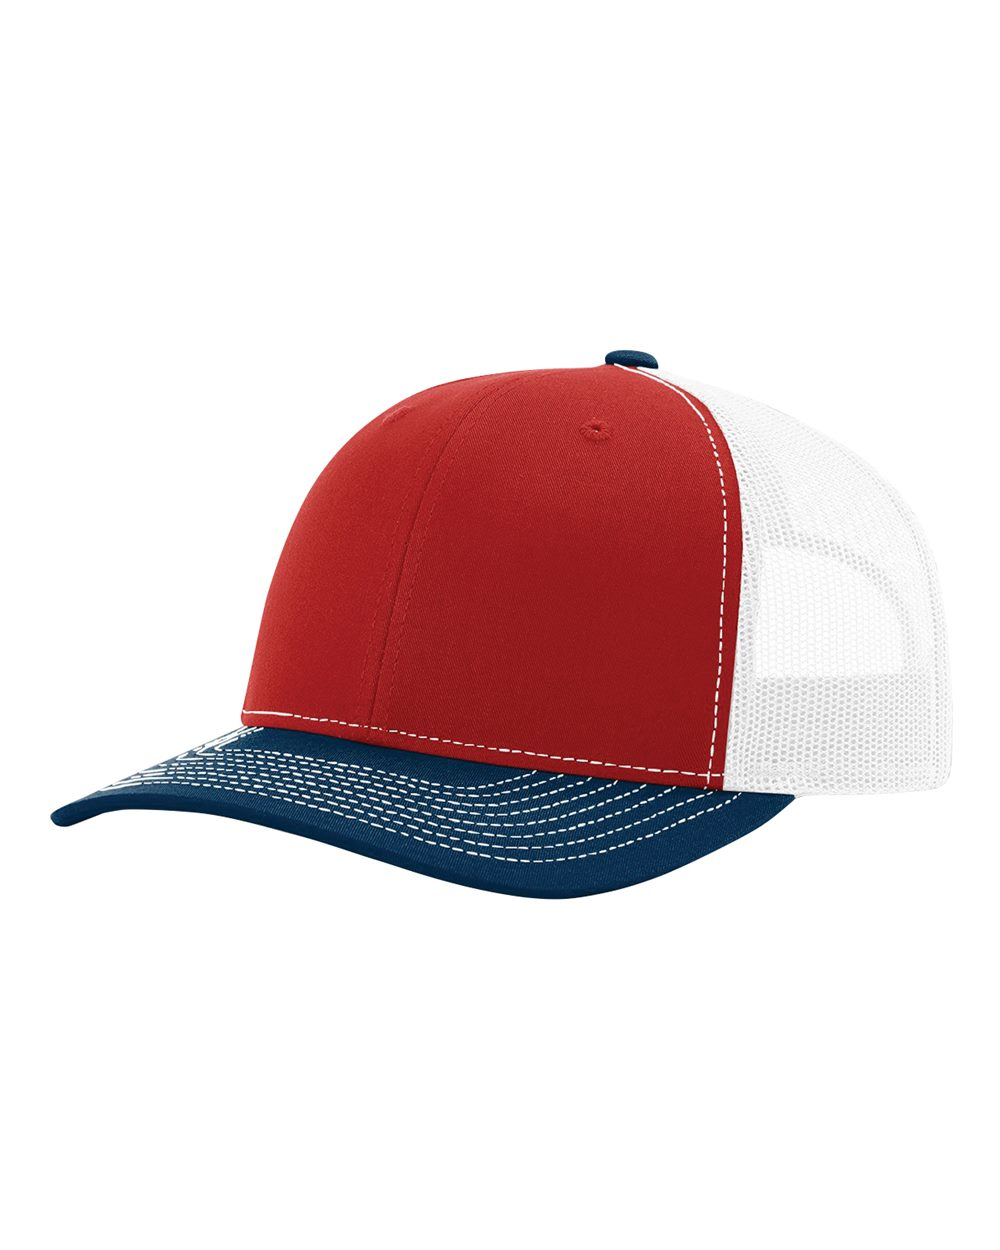 click to view Red/ White/ Navy